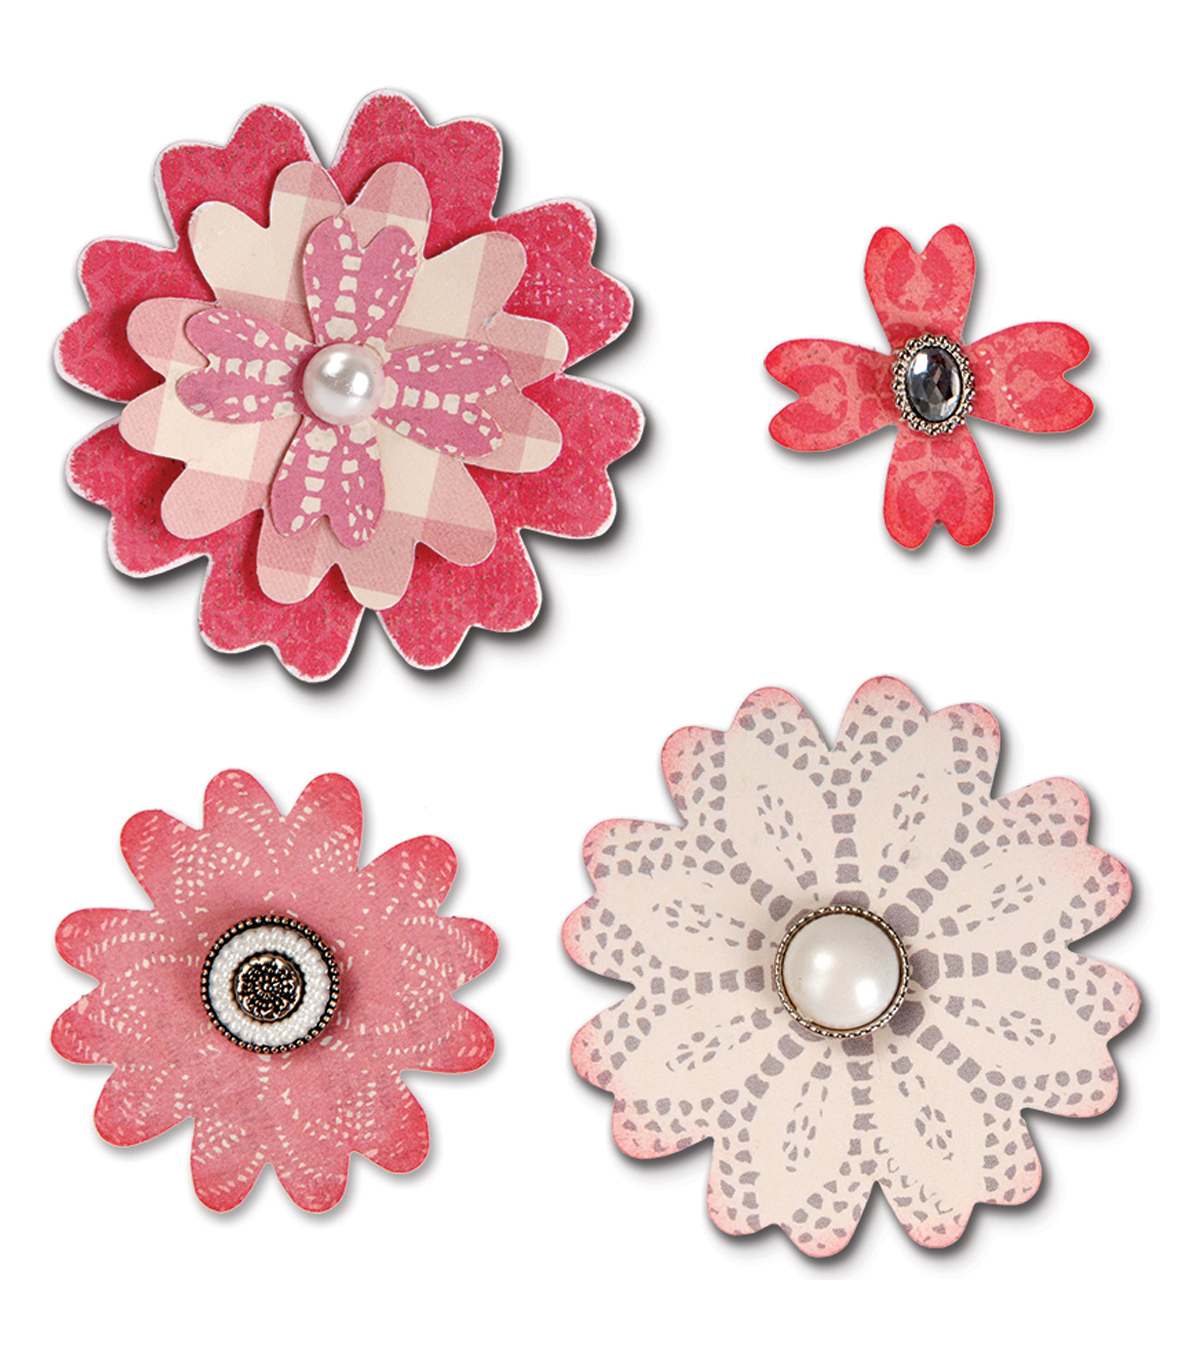 Sizzix™ Bigz™ Eileen Hull Die-Flower Layers with Heart Petals